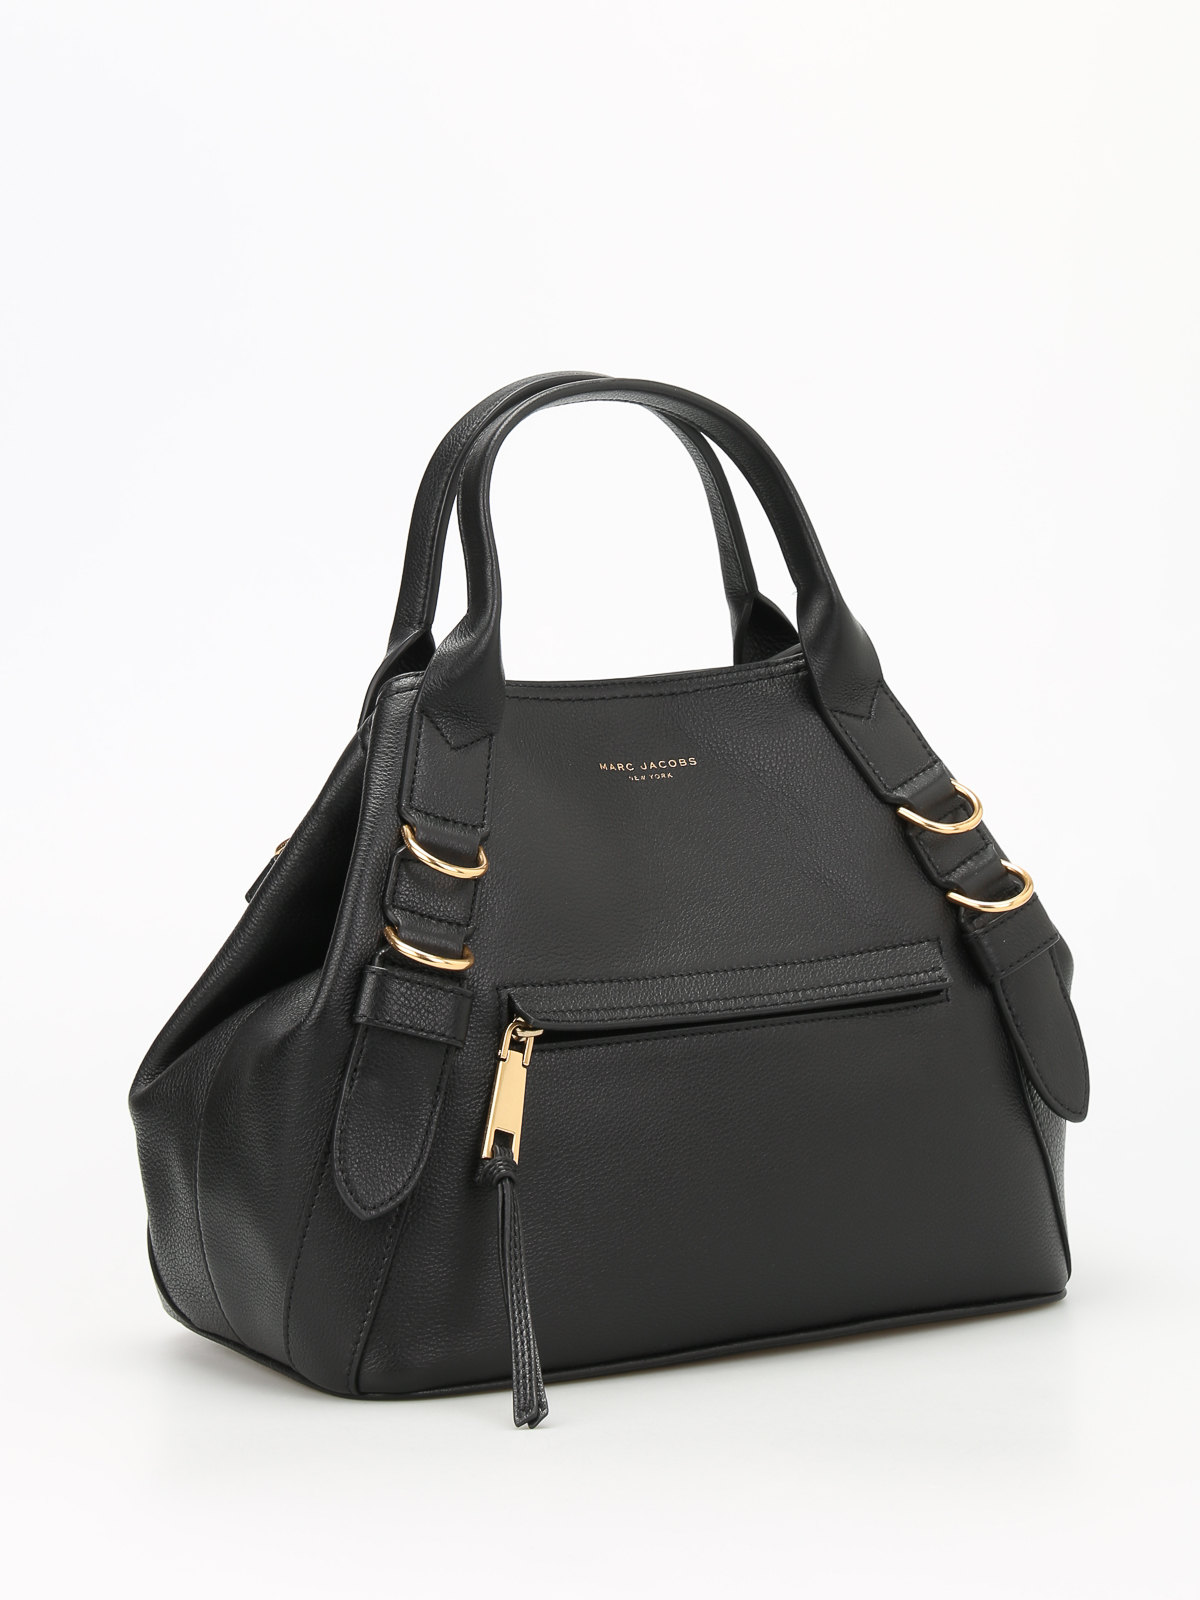 Marc Jacobs - The Anchor leather tote - totes bags - M0012006001